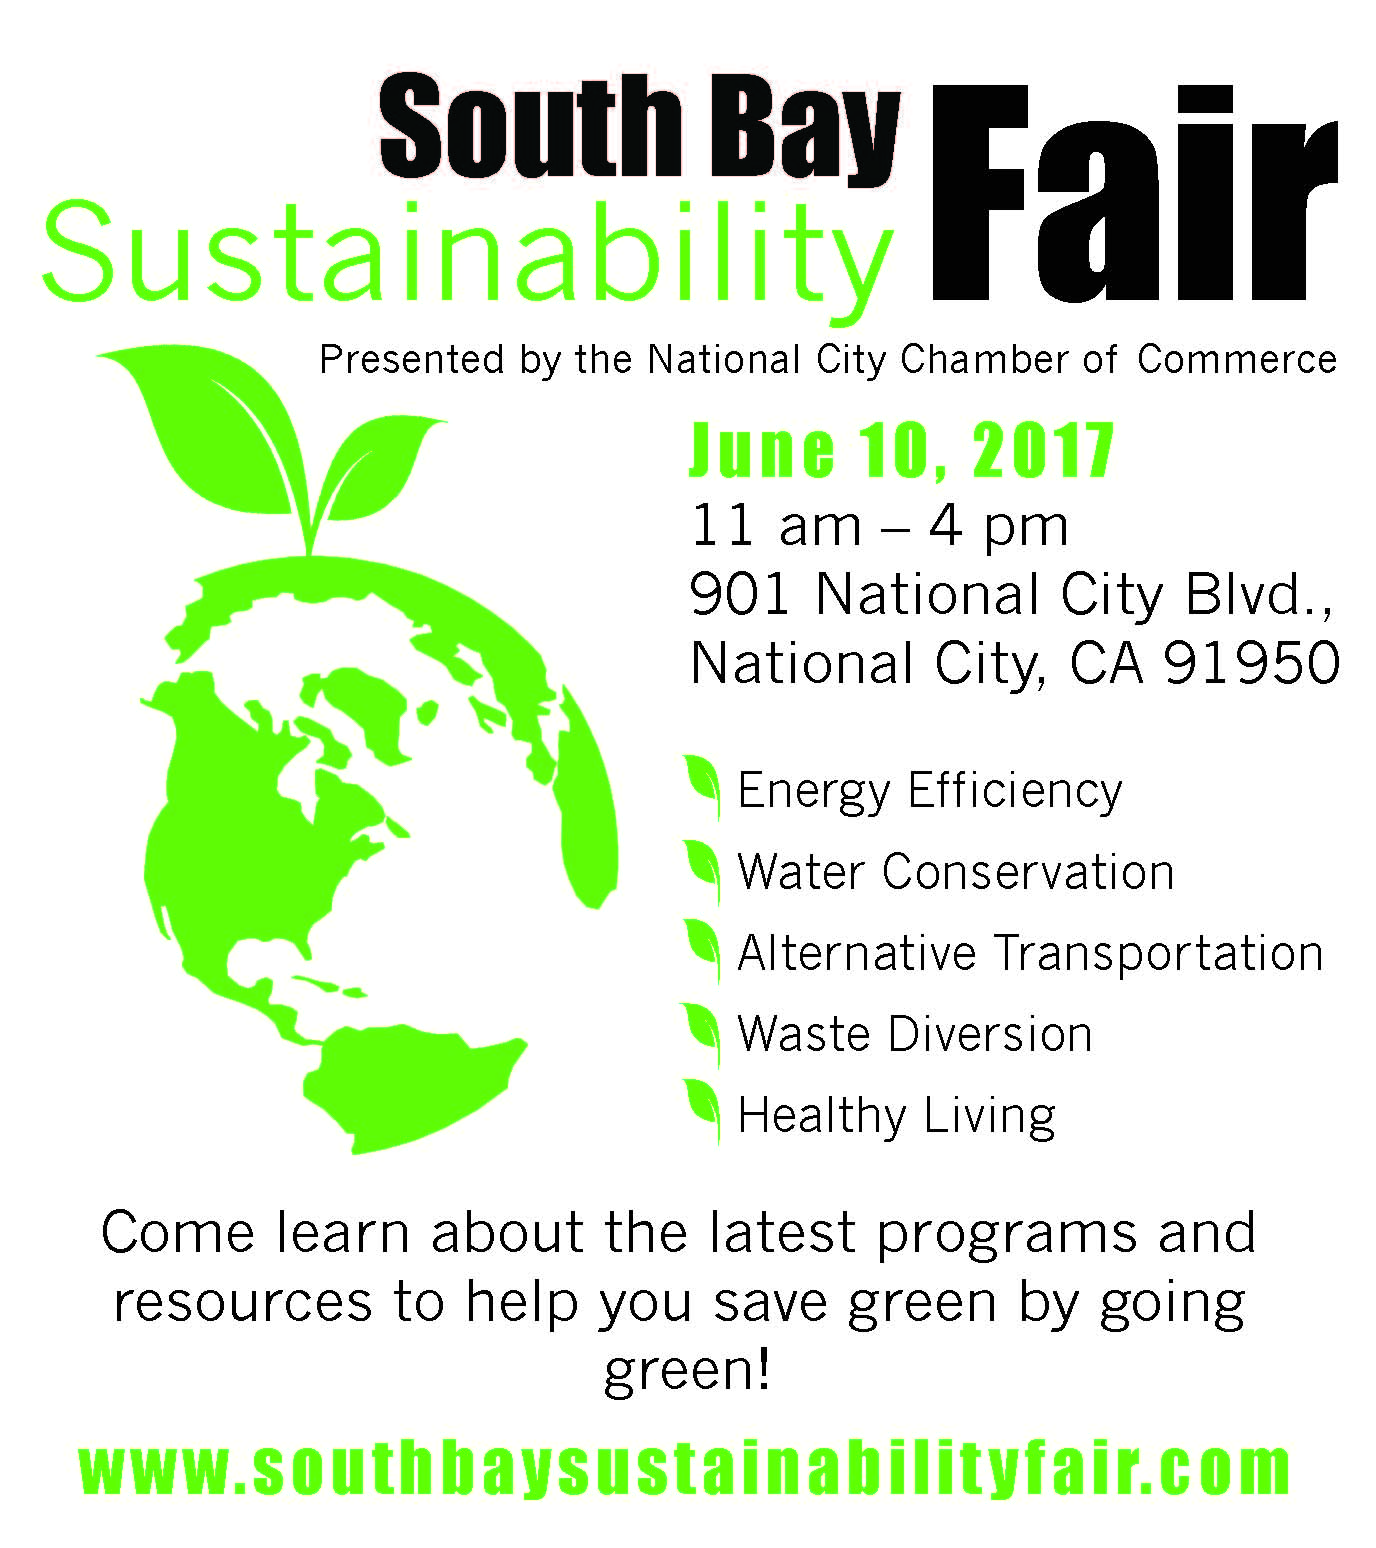 South Bay Sustainability Fair